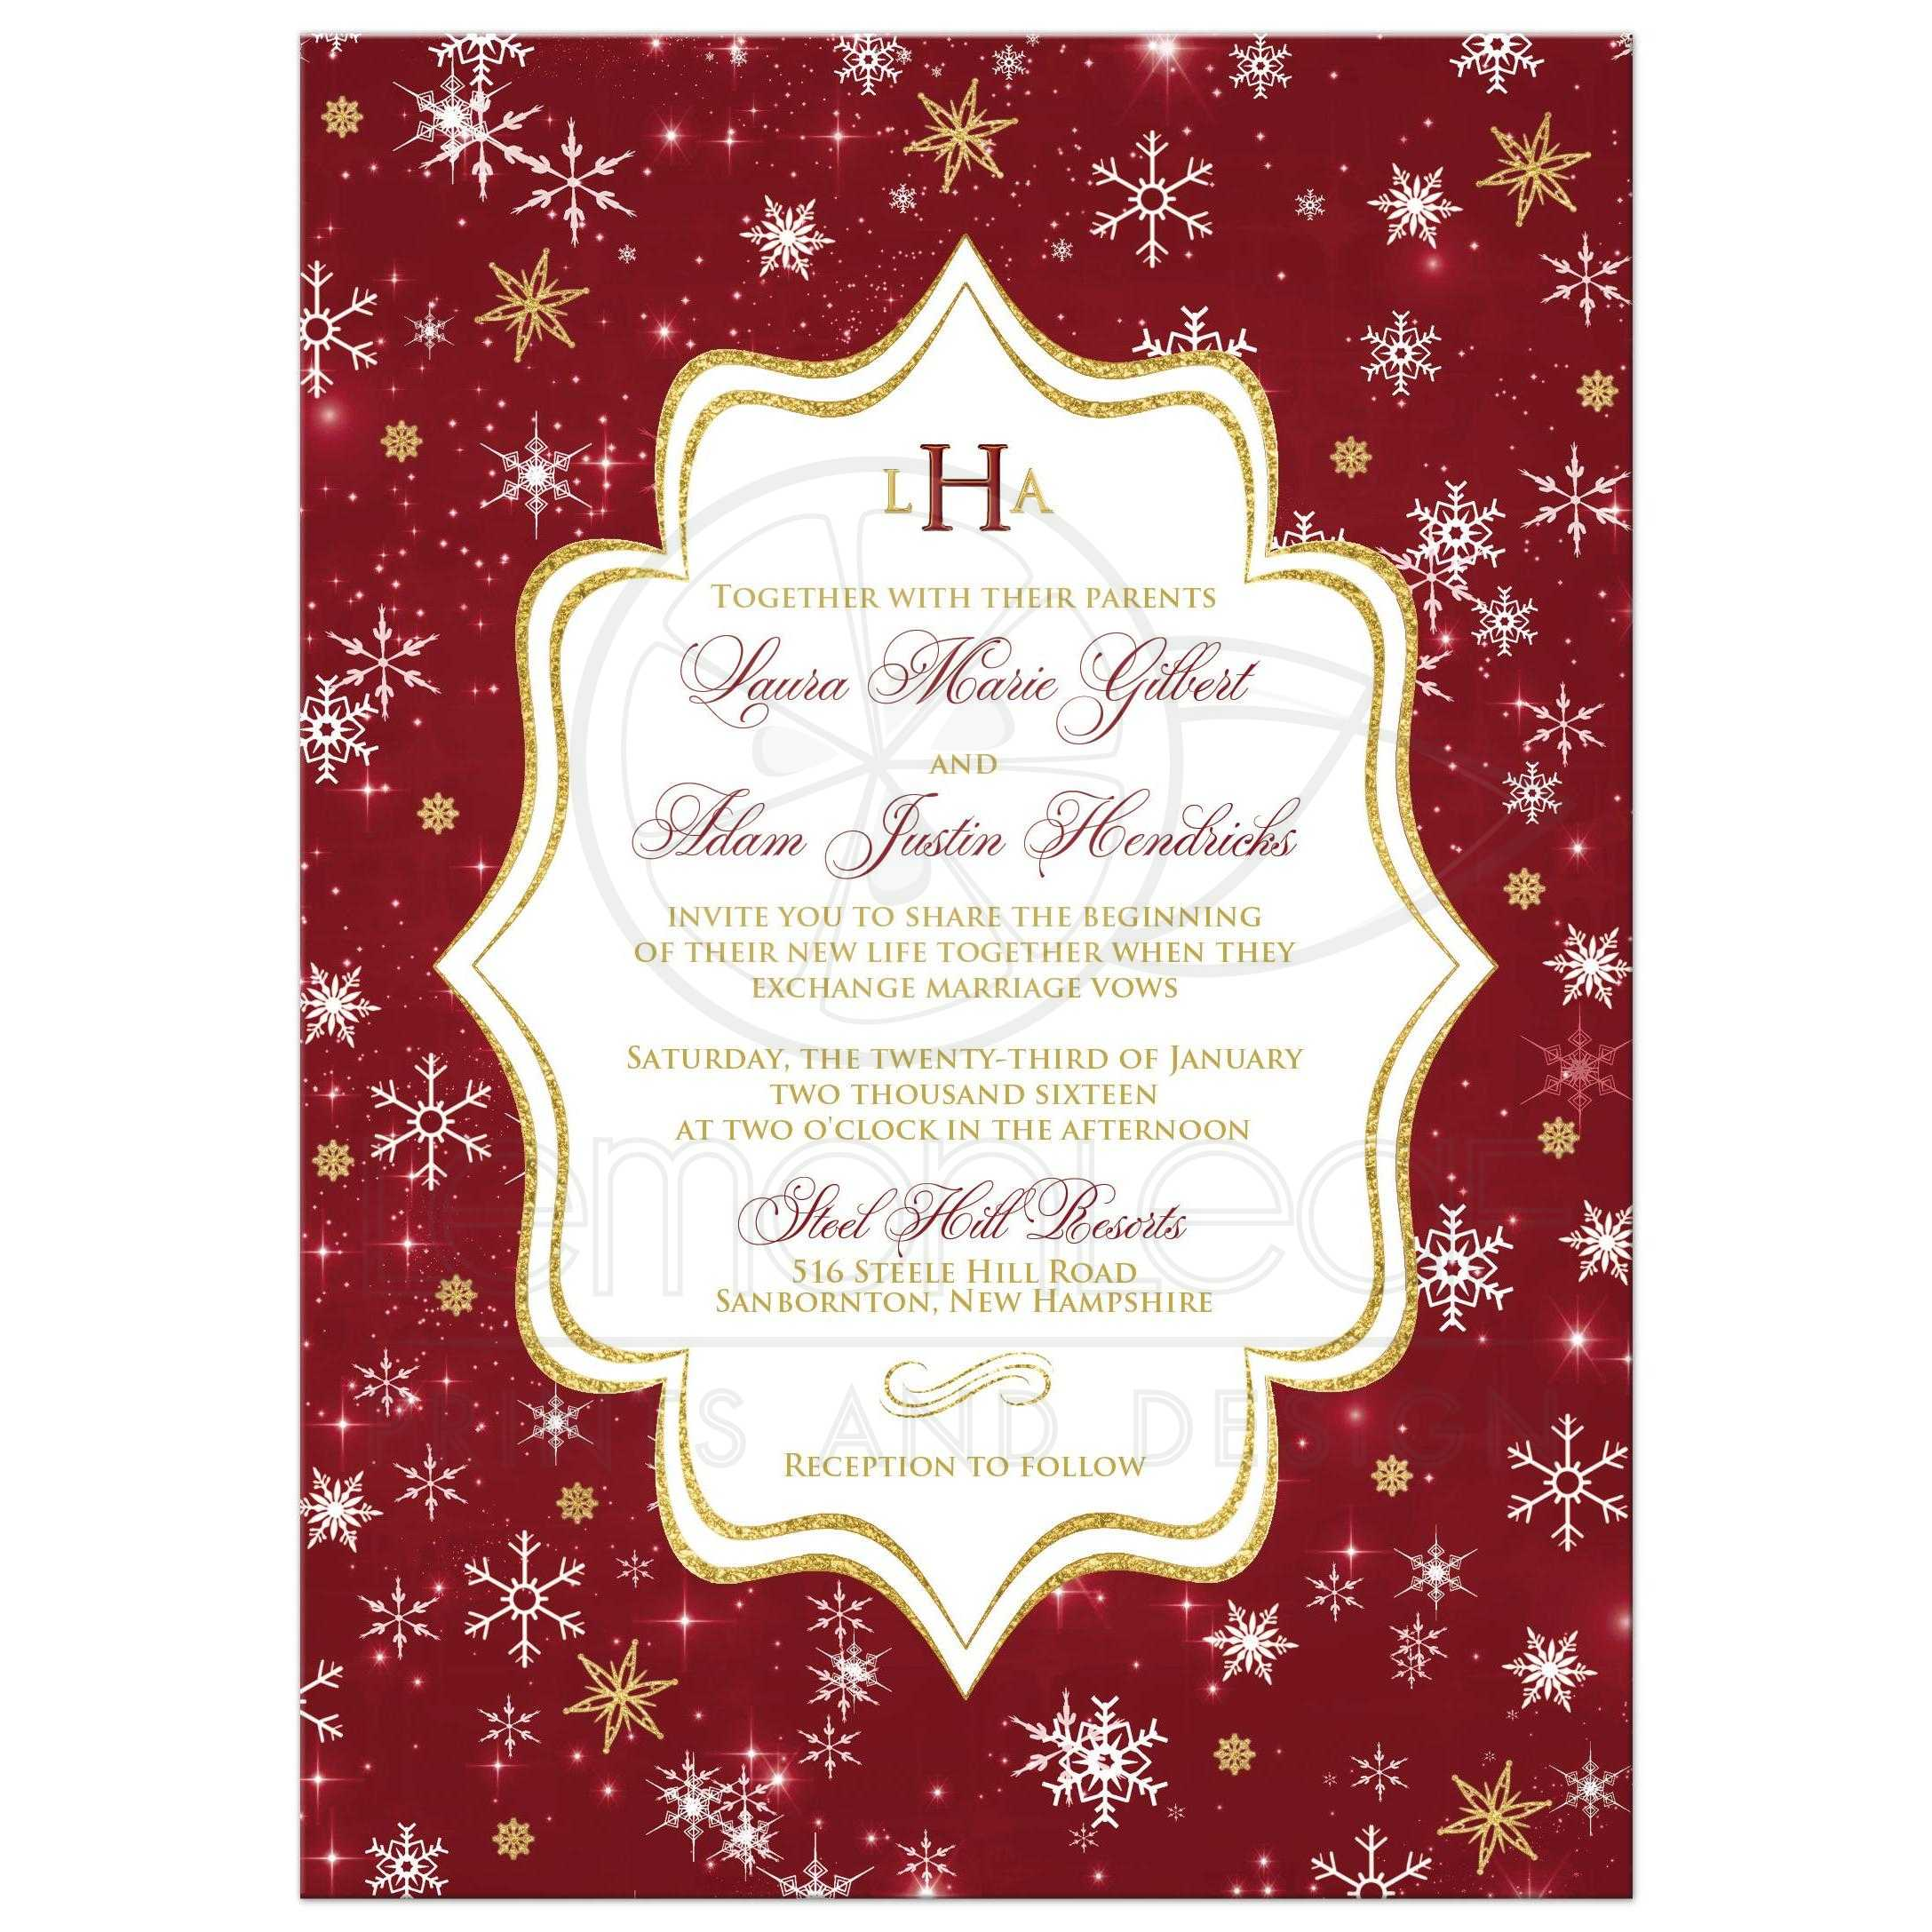 Monogrammed Wedding Invitation Cranberry Gold White Snowflakes